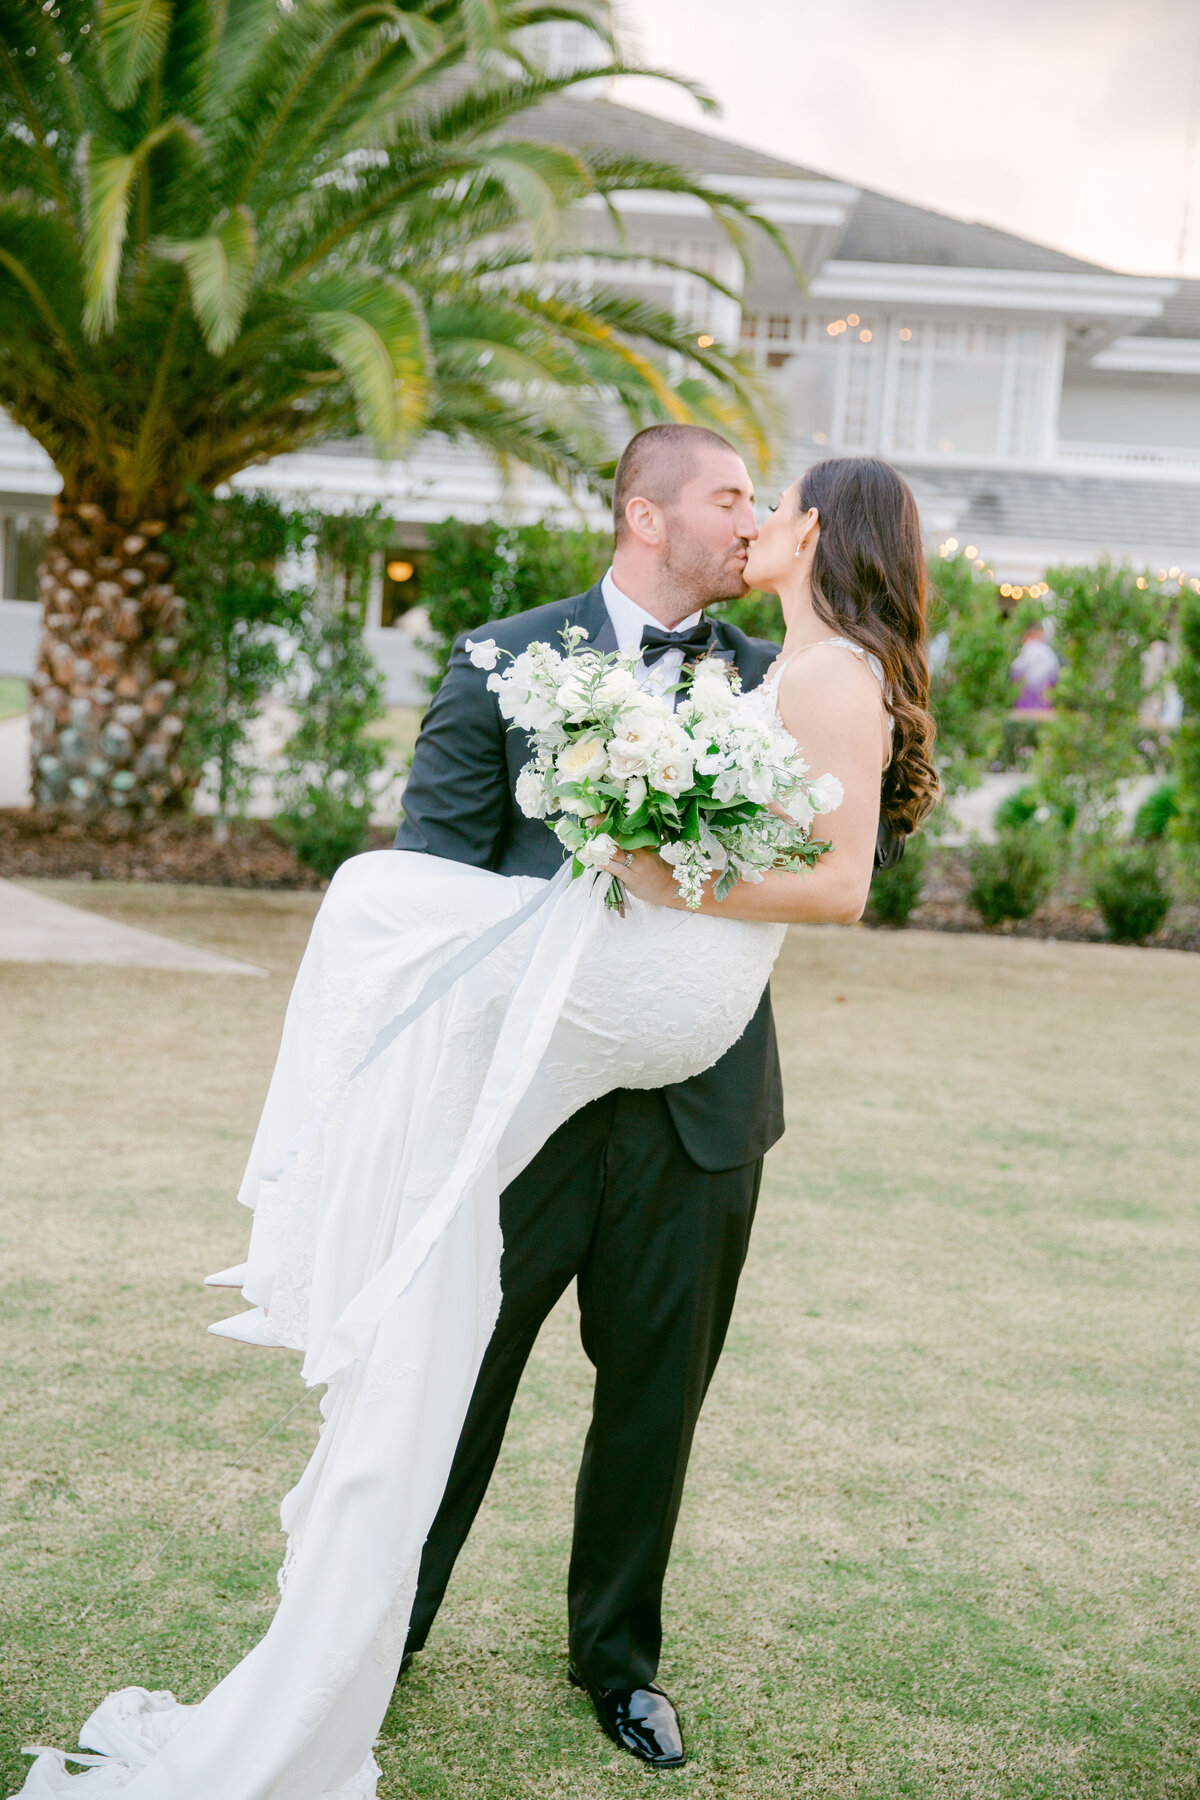 Tretter_Wedding_Carmel_Mountain_Ranch_San_Diego_California_Jacksonville_Florida_Devon_Donnahoo_Photography_1651